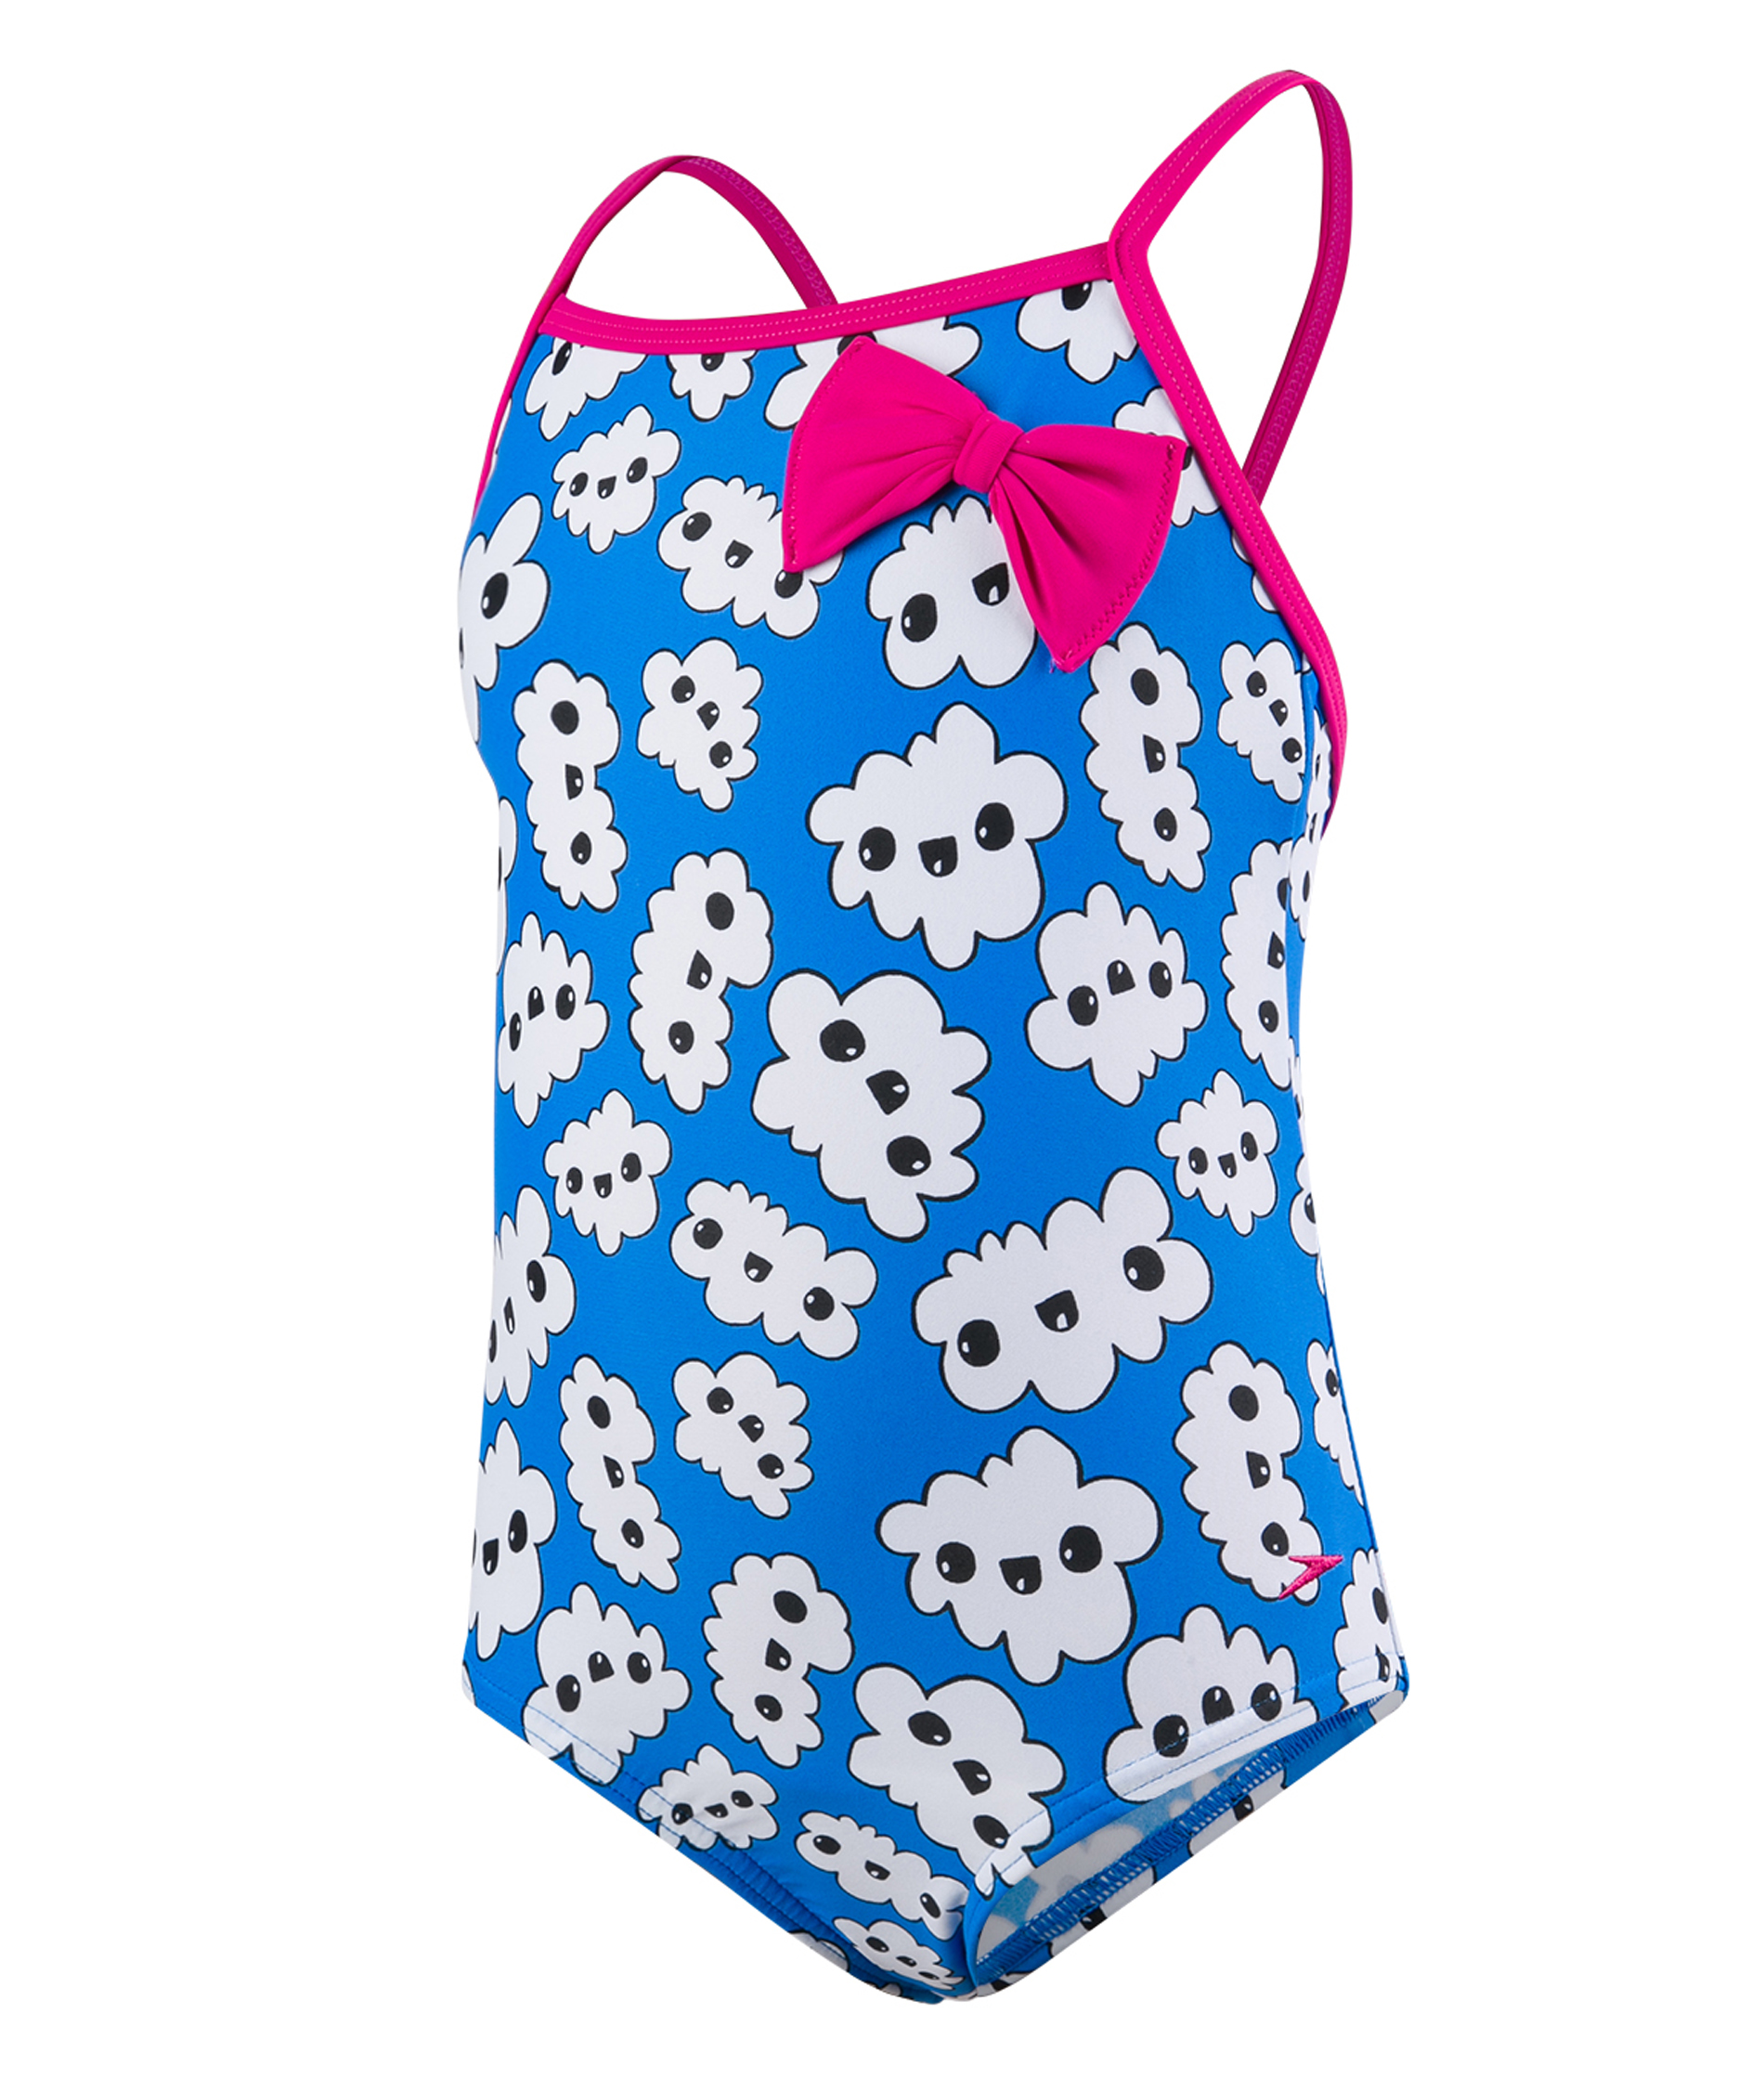 Speedo Infant Girls Bow Swimsuit